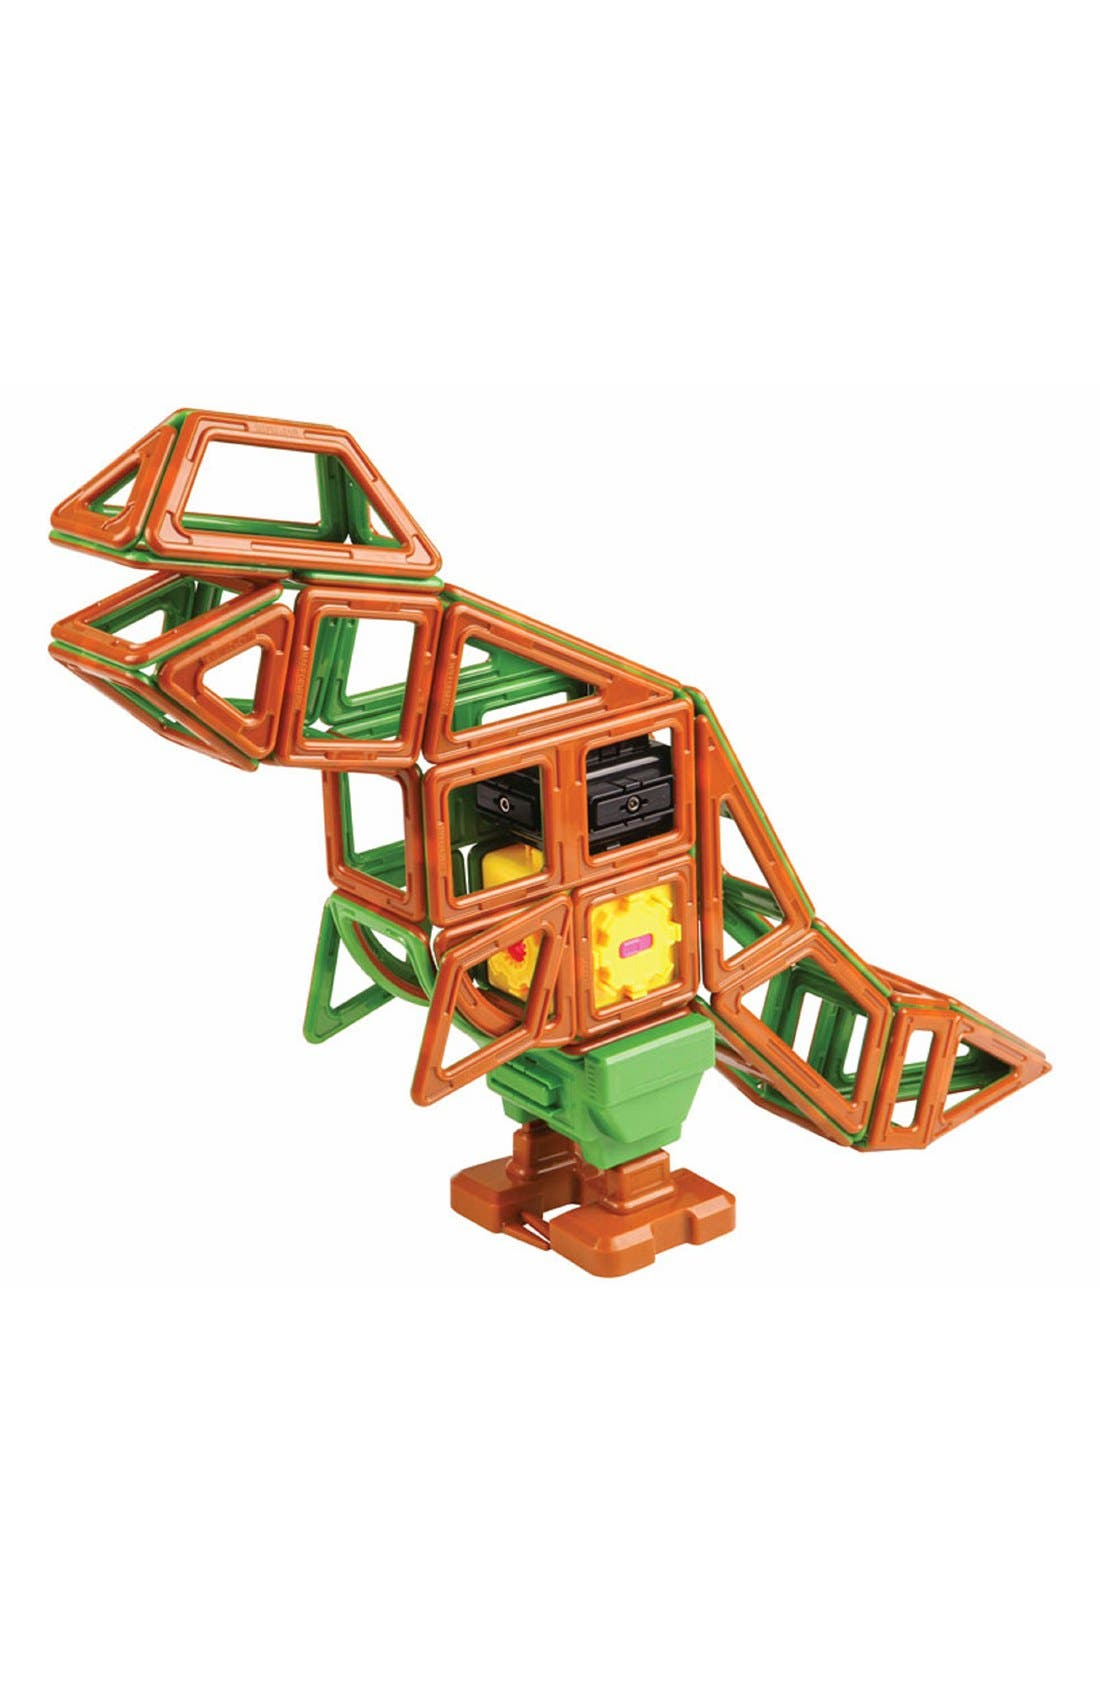 'Walking Dinosaur' Wind-Up Toy Magnetic Construction Set,                             Alternate thumbnail 2, color,                             Green/ Brown